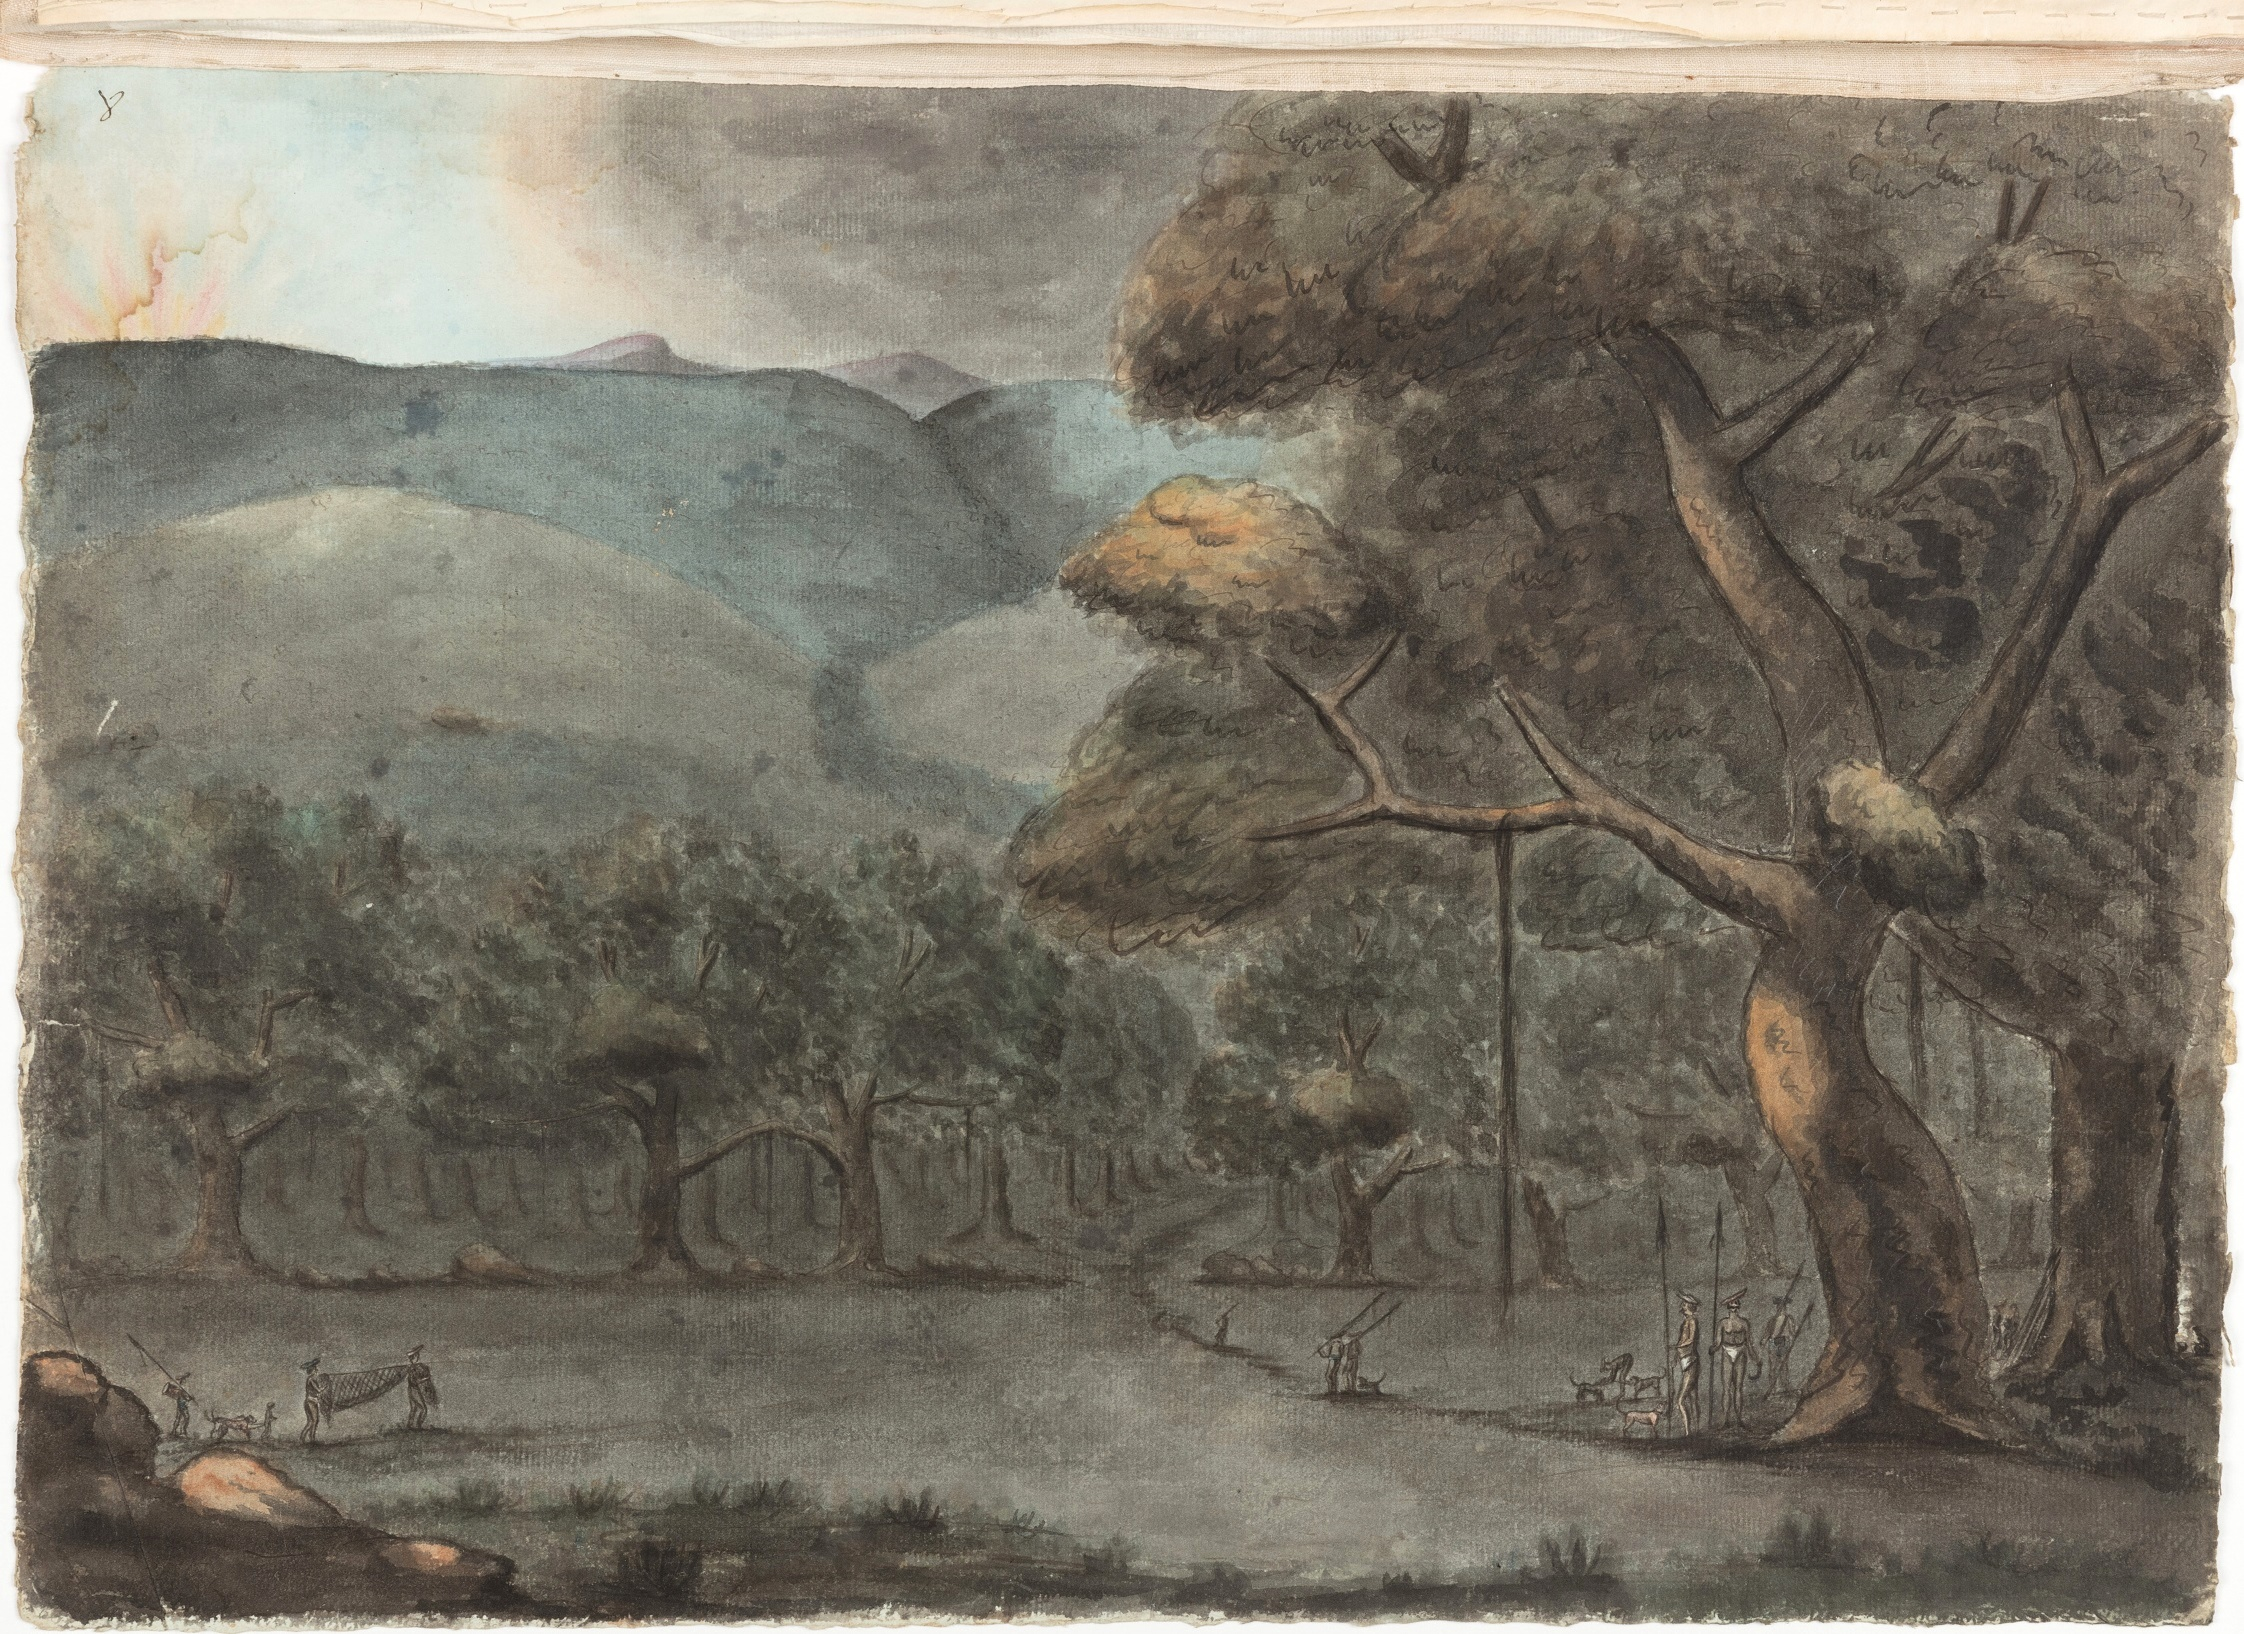 Entrance at the Bottom of the Hills to the Shivighurry Pollums or Comby (Strongholds in the Valleys) – Evening / Thomas Marriott